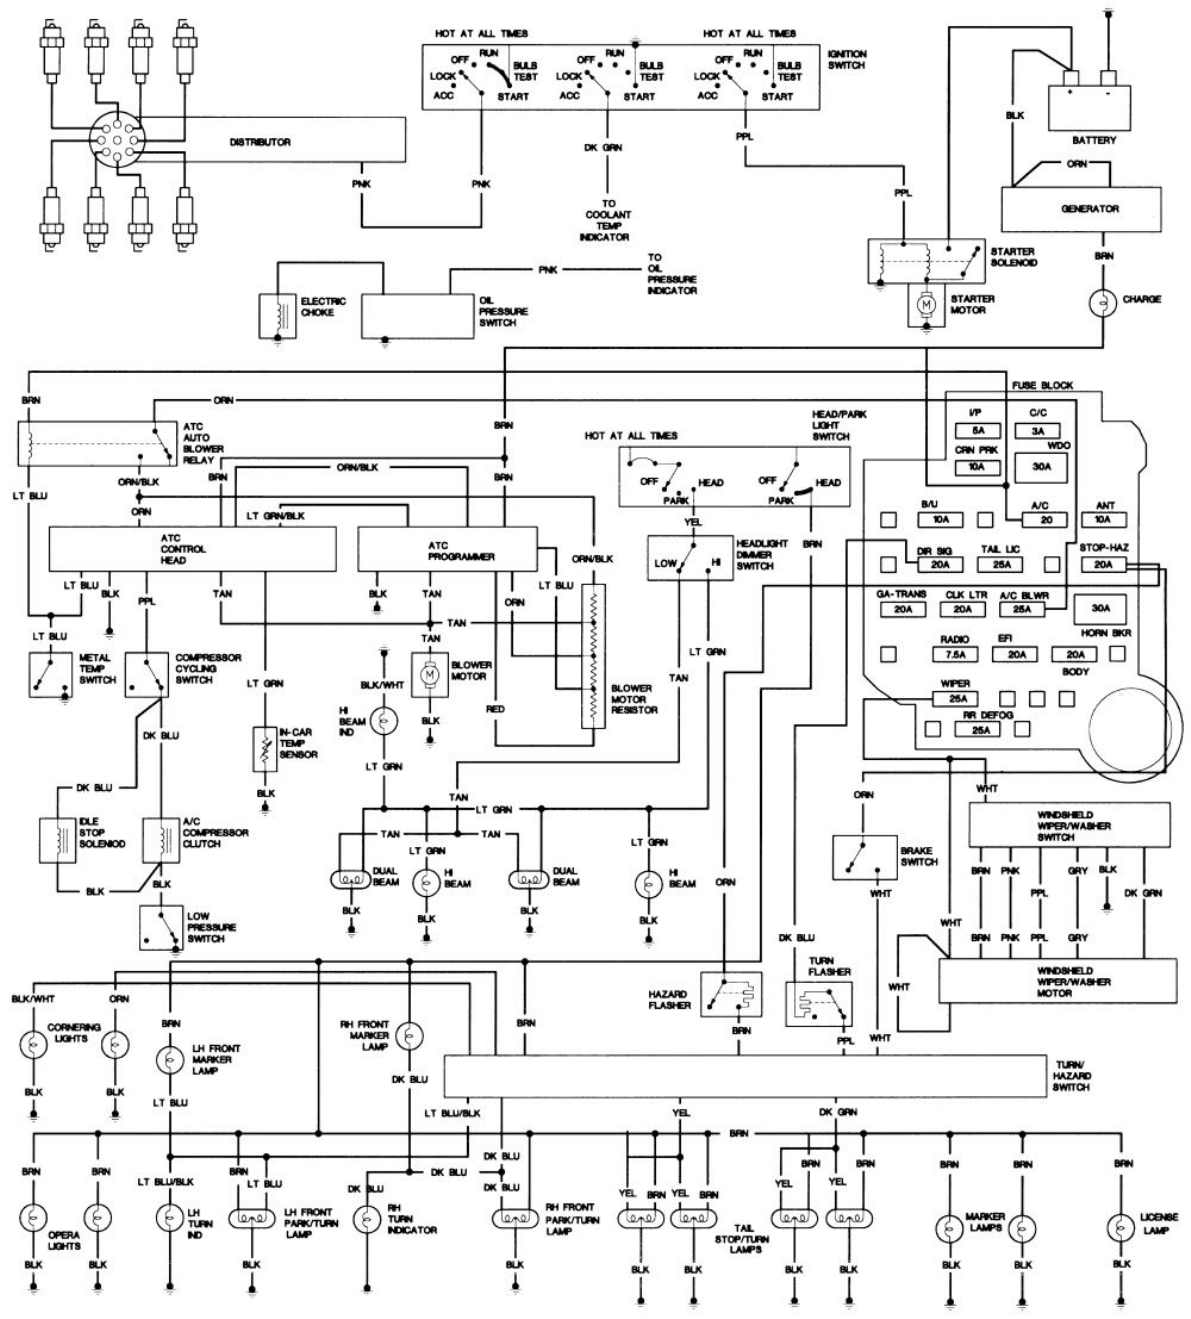 cadillac fleetwood 1977 1980 misc documents wiring diagrams pdf 1993 Isuzu NPR Wiring-Diagram